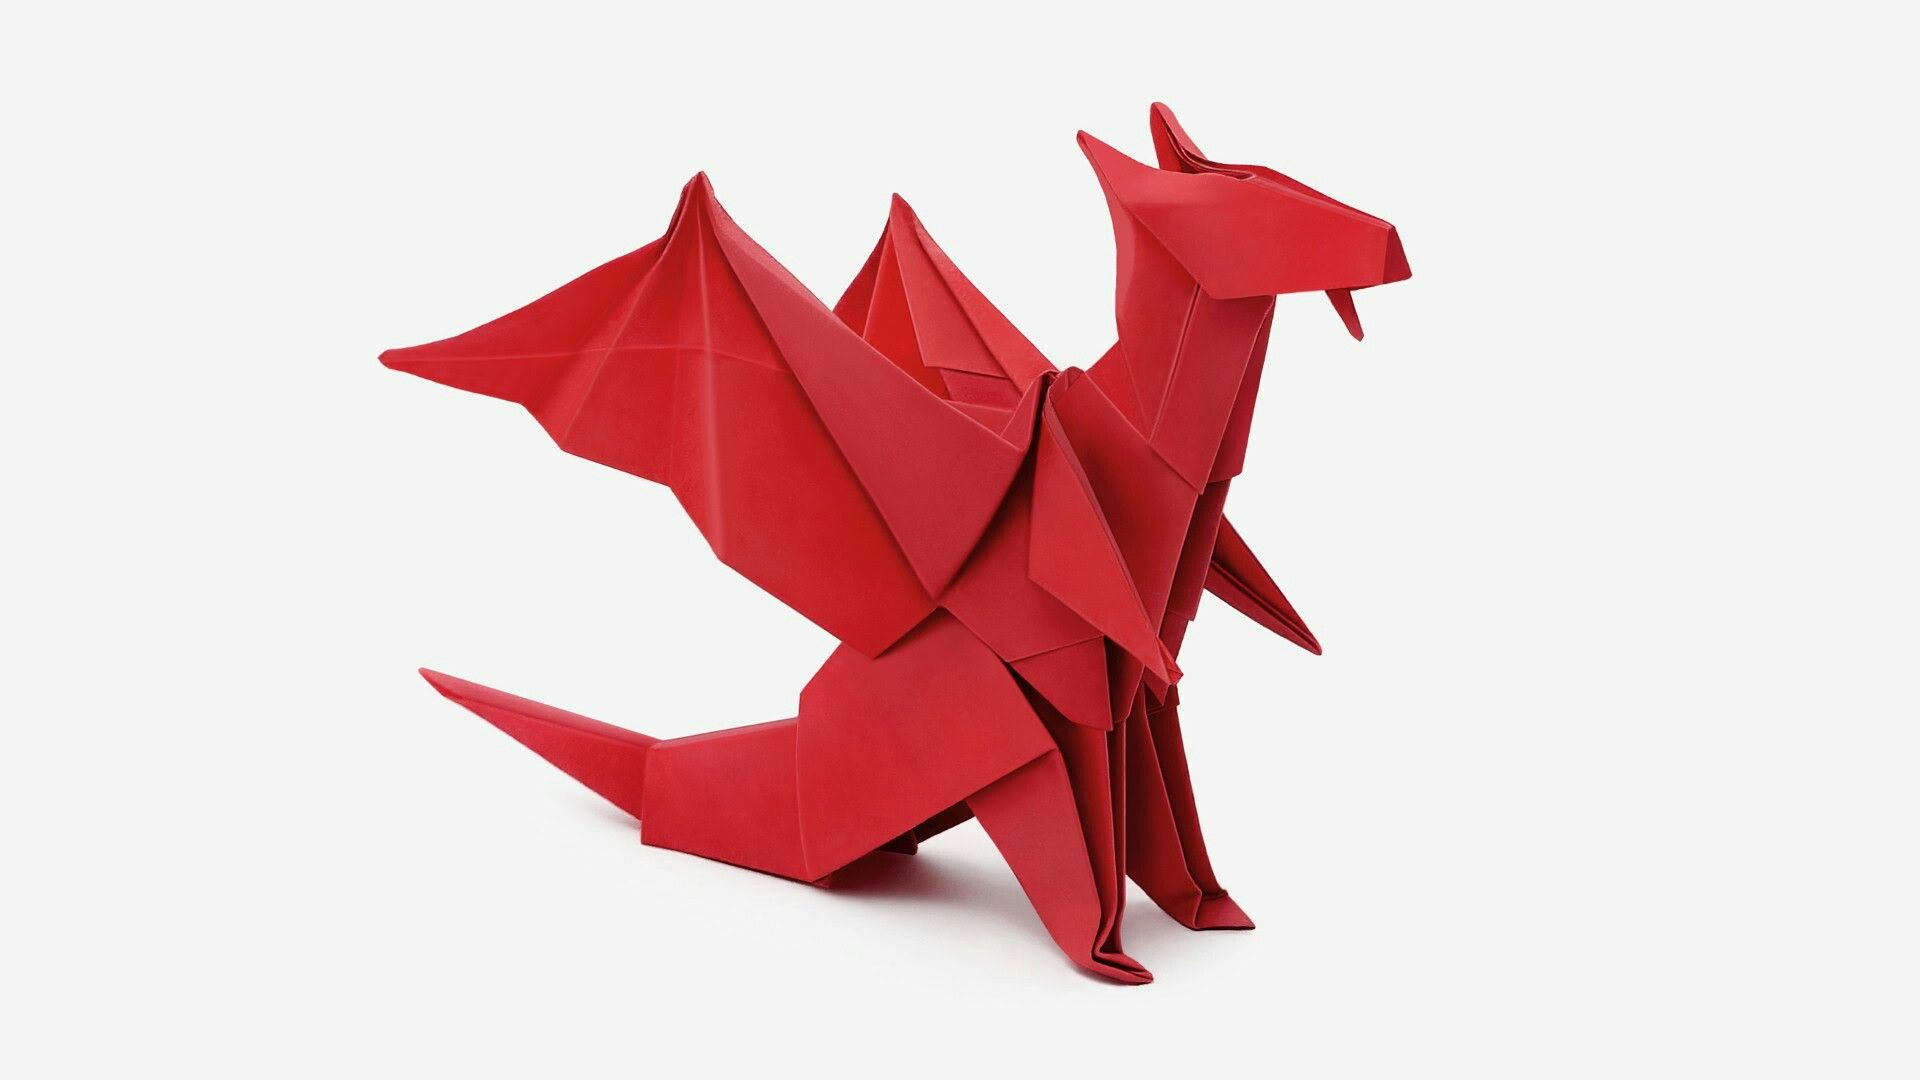 Origami squirrel easy origami tutorial how to make an origami origami squirrel easy origami tutorial how to make an origami squirrel youtube origami kirigami pinterest easy origami origami tutorial and jeuxipadfo Choice Image